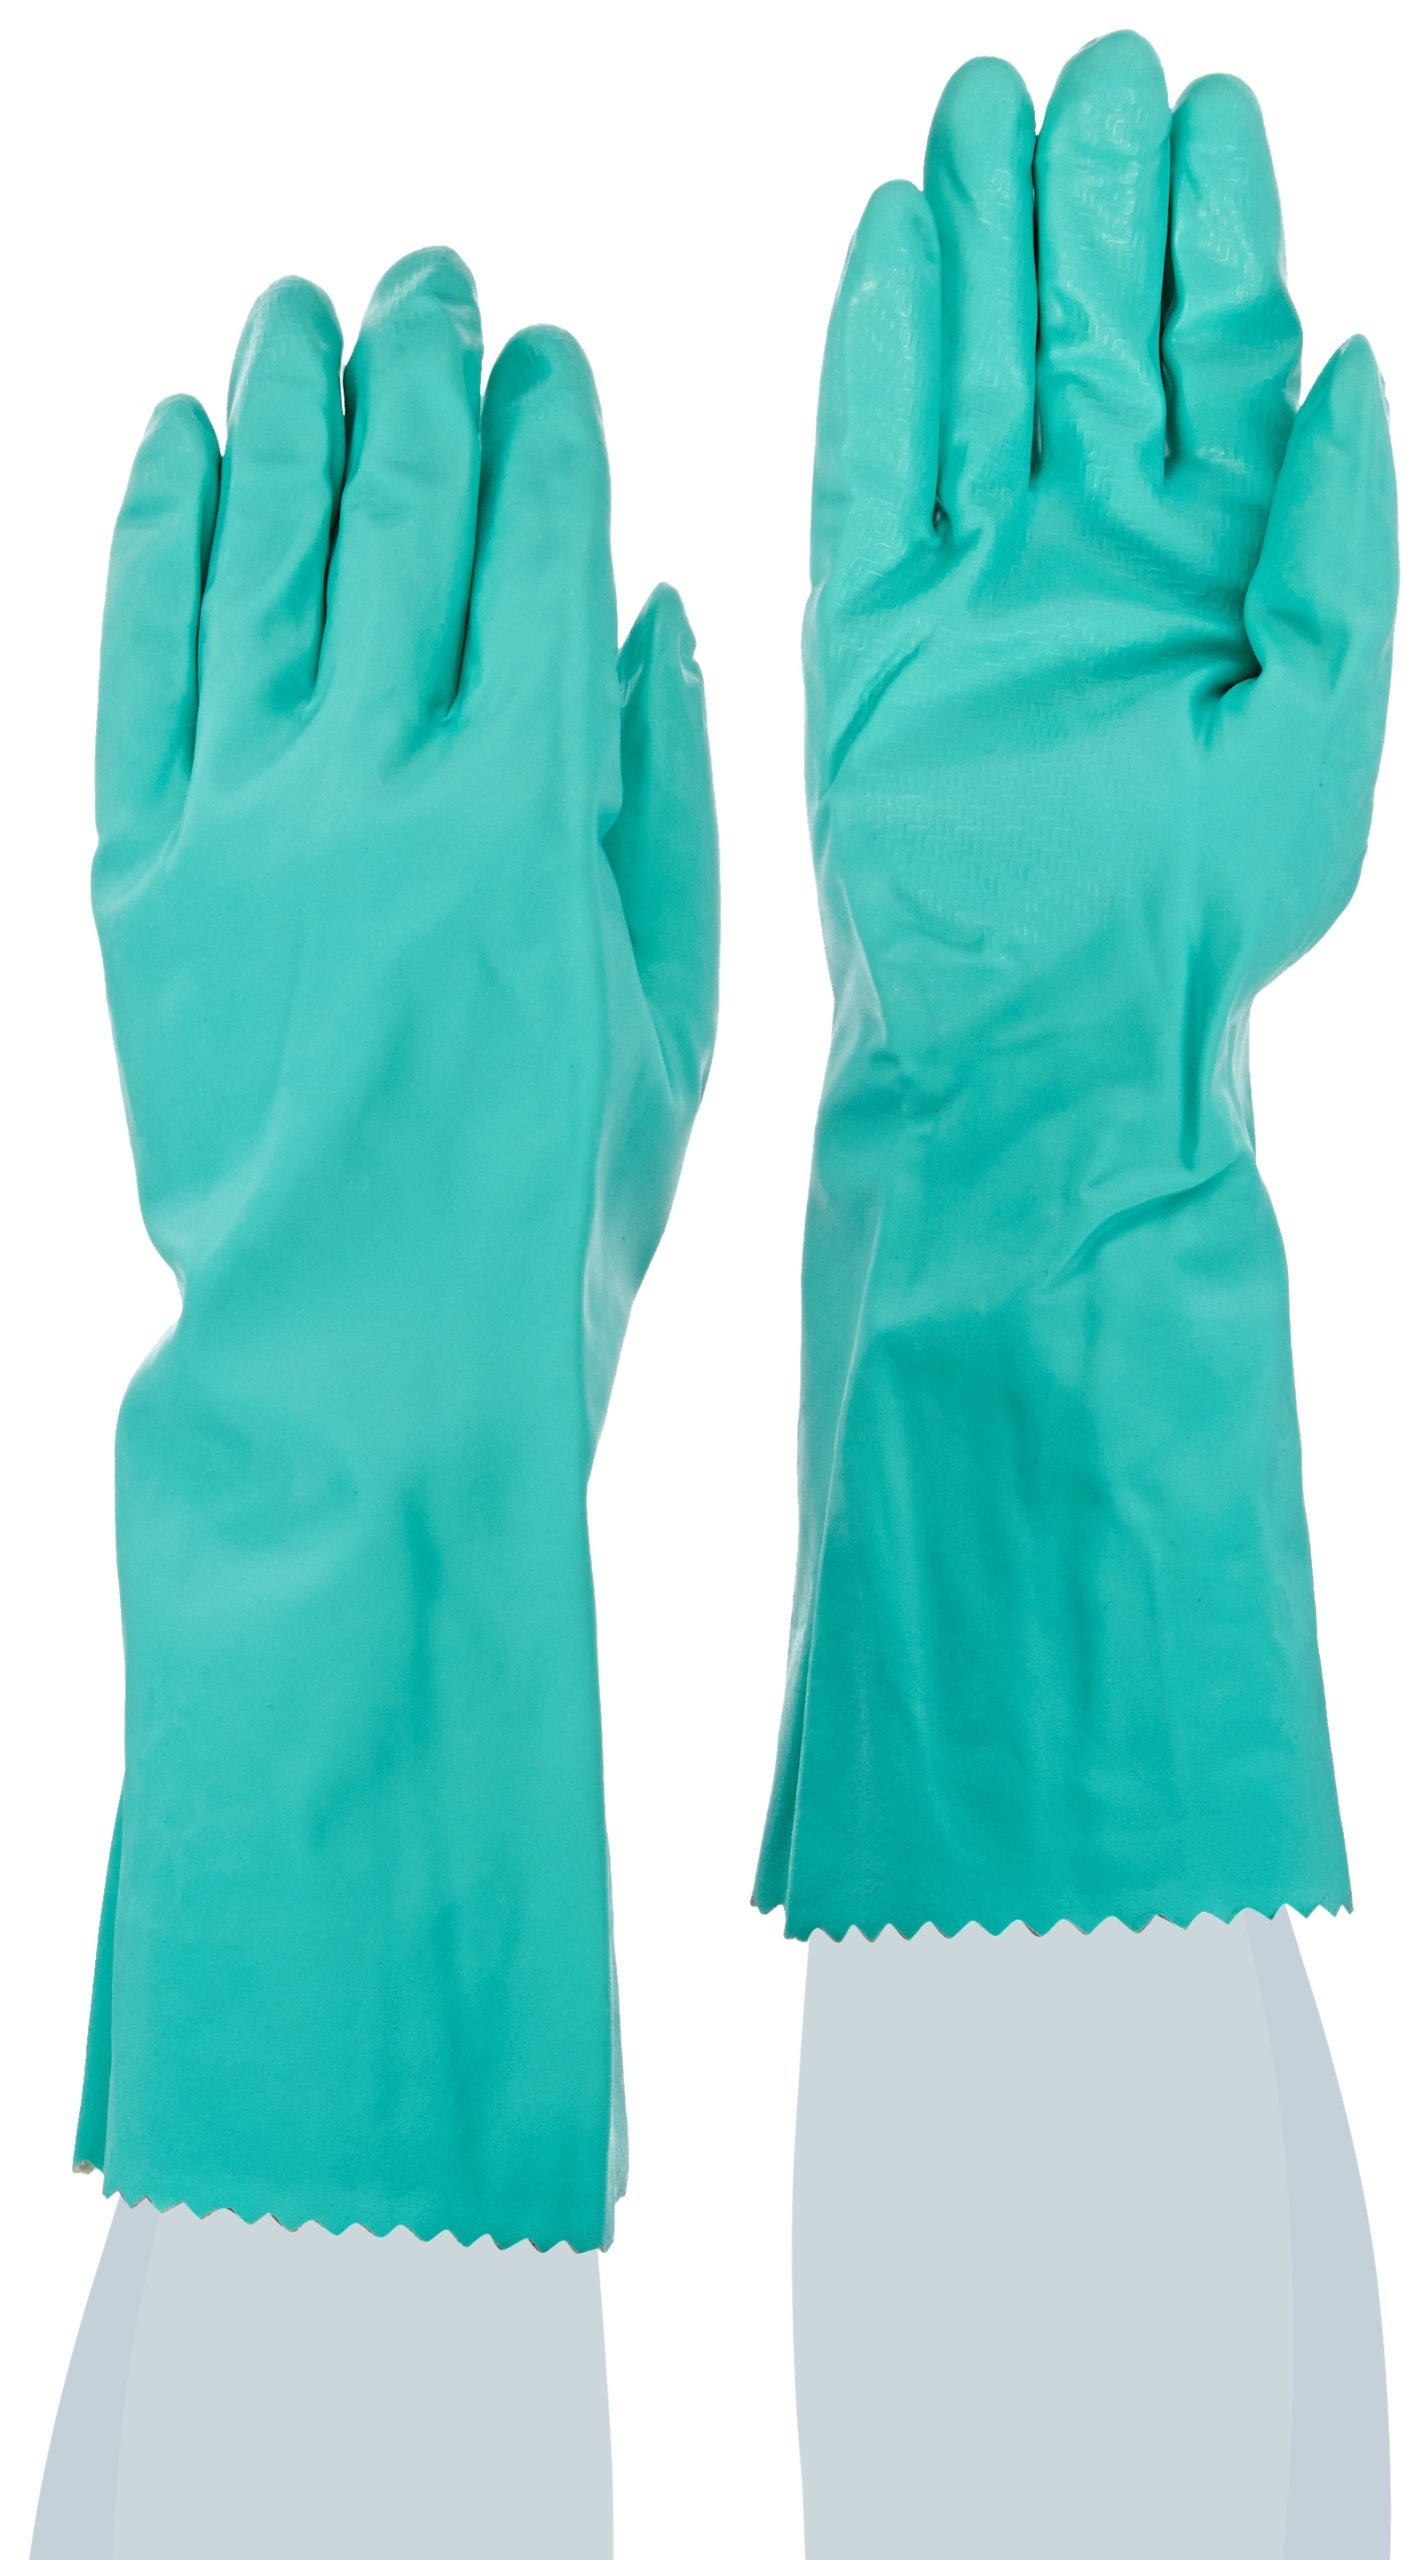 MAPA Stansolv AK-22 Nitrile Mediumweight Glove, Chemical Resistant, 0.033'' Thickness, 14'' Length, Size 8, Green (Bag of 12 Pairs)